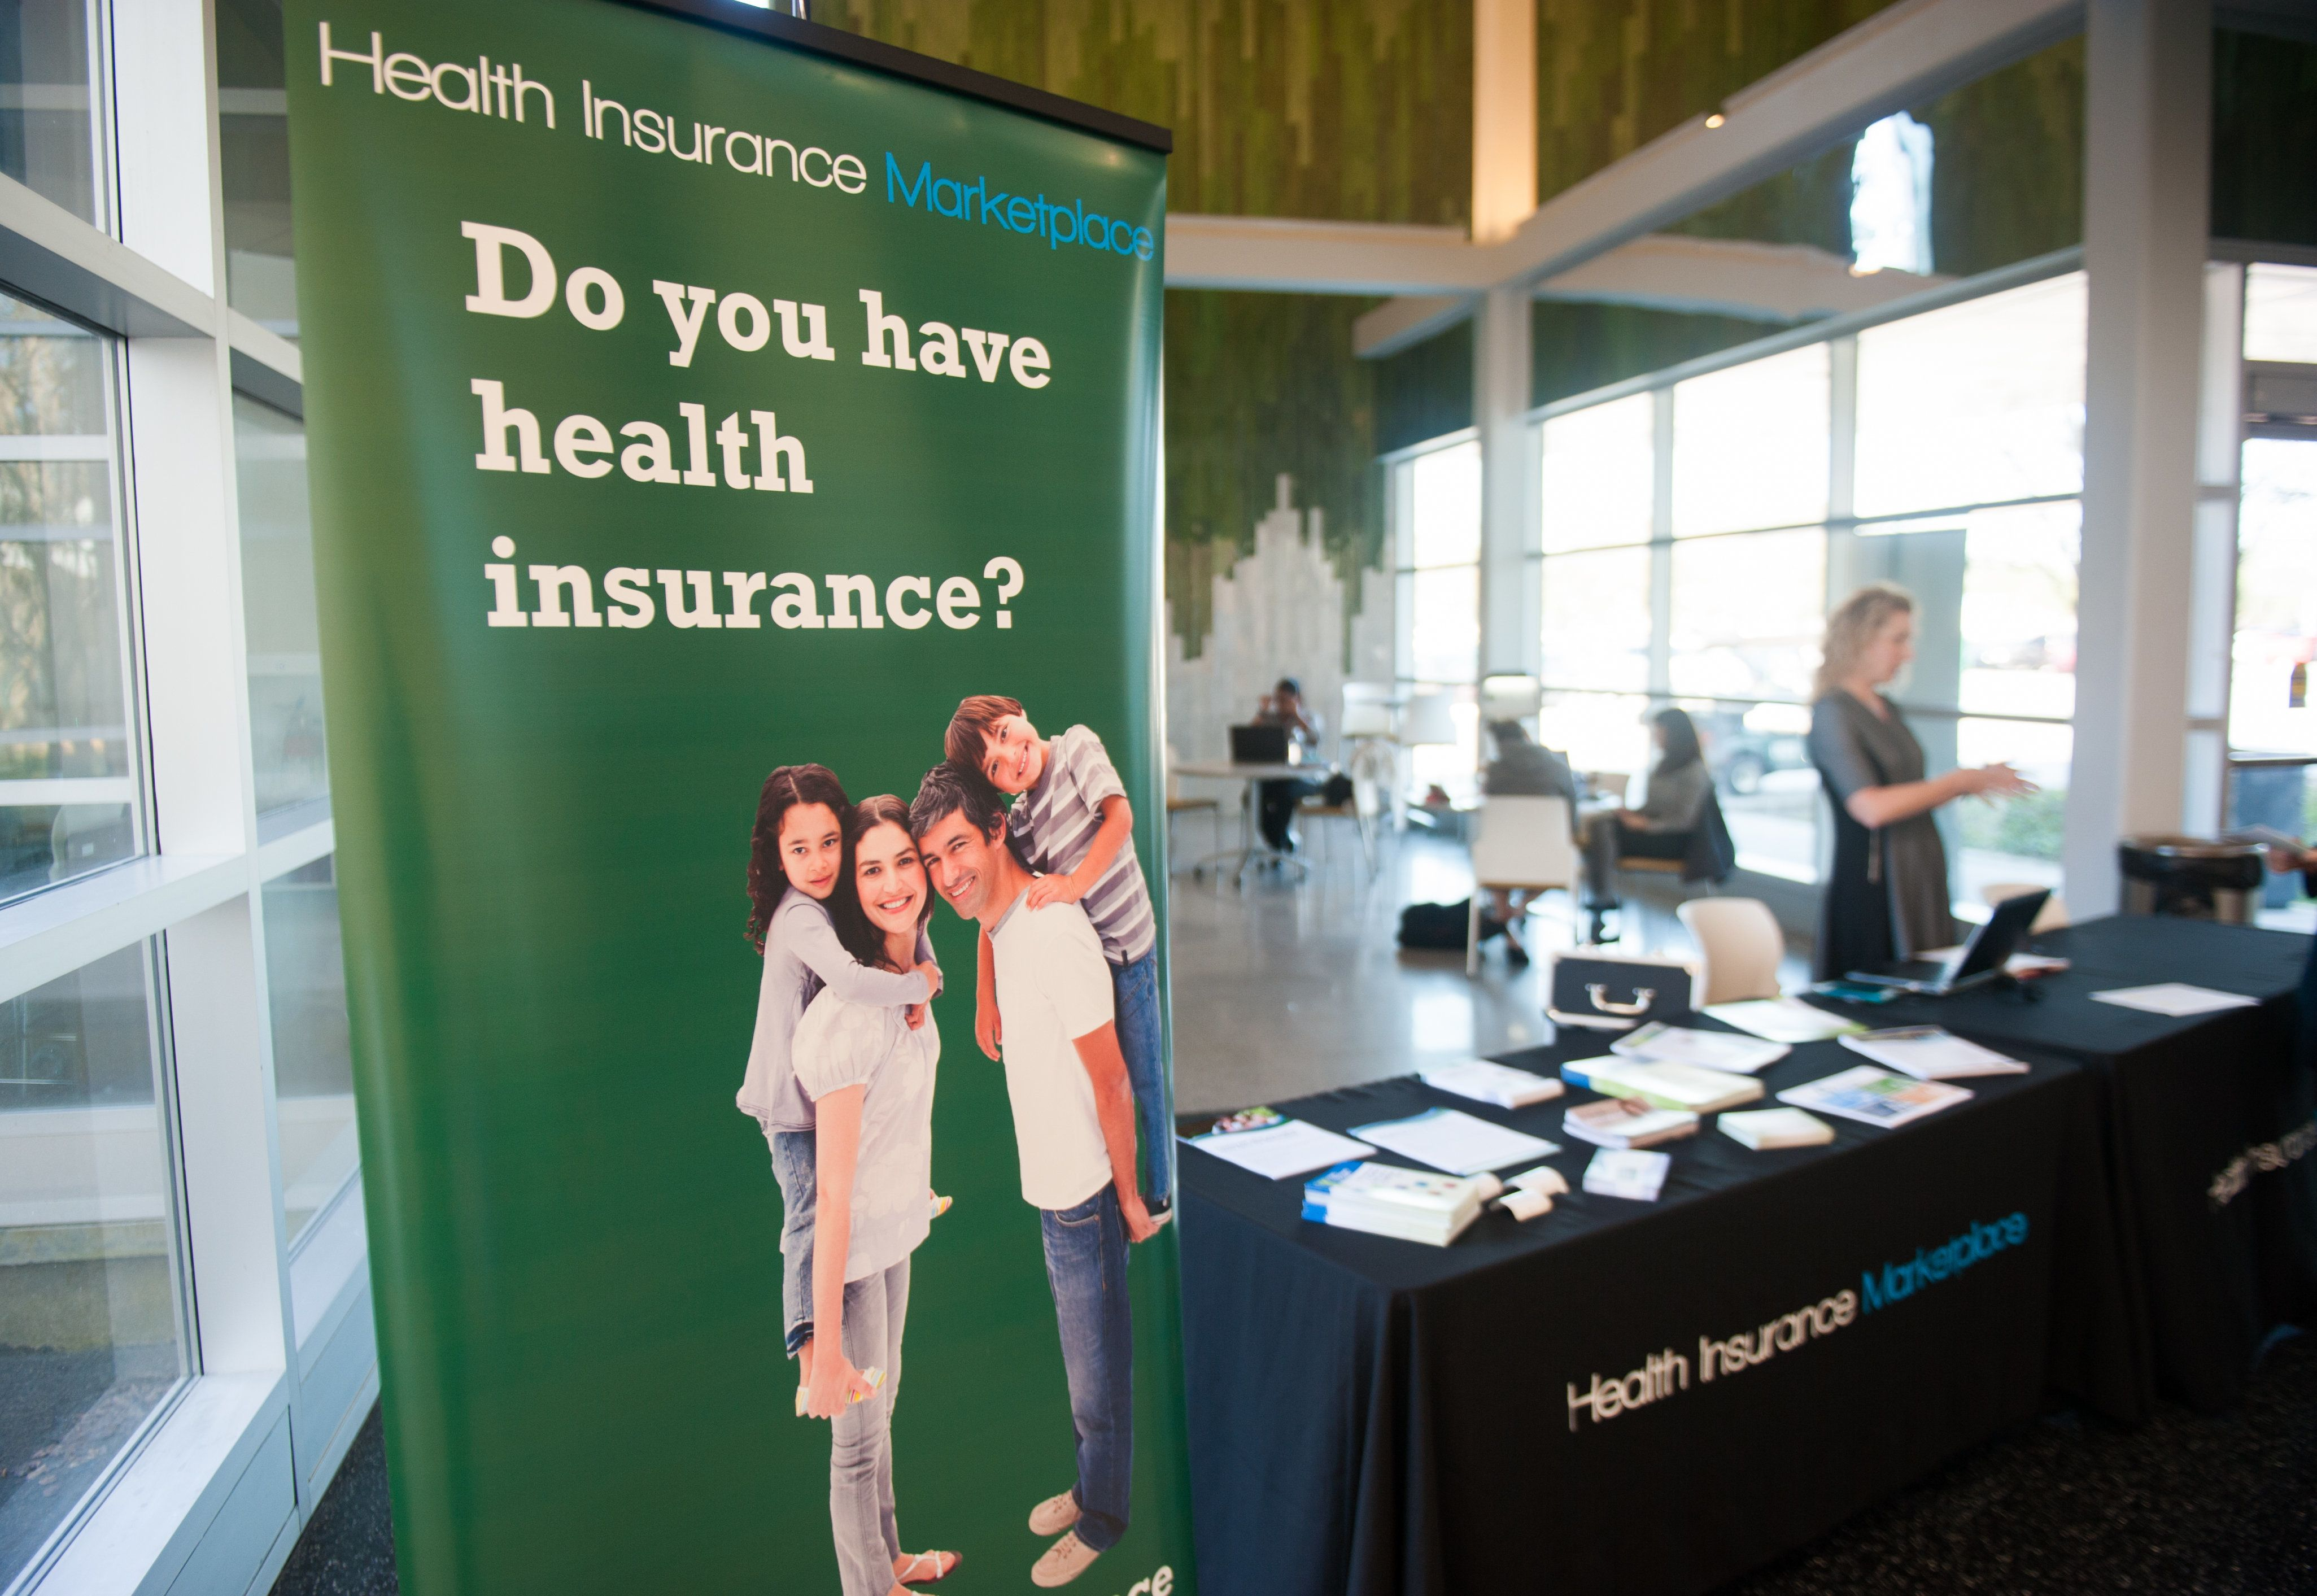 Open enrollment events across Florida have been drawing steady, strong crowds, according to organizers.